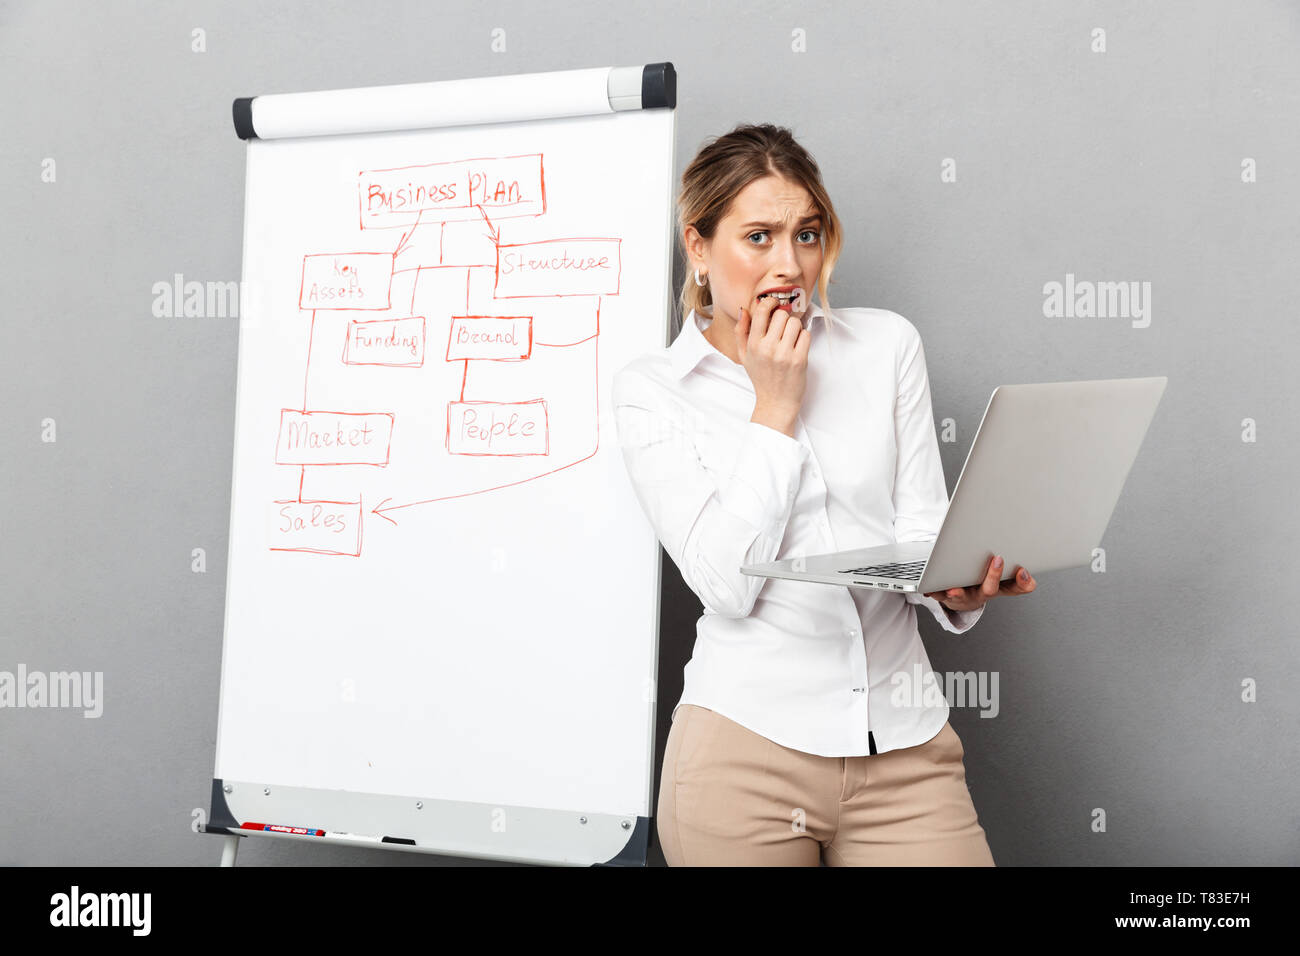 Image of young businesswoman in formal wear using flipchart and laptop while making presentation in the office isolated over gray background - Stock Image